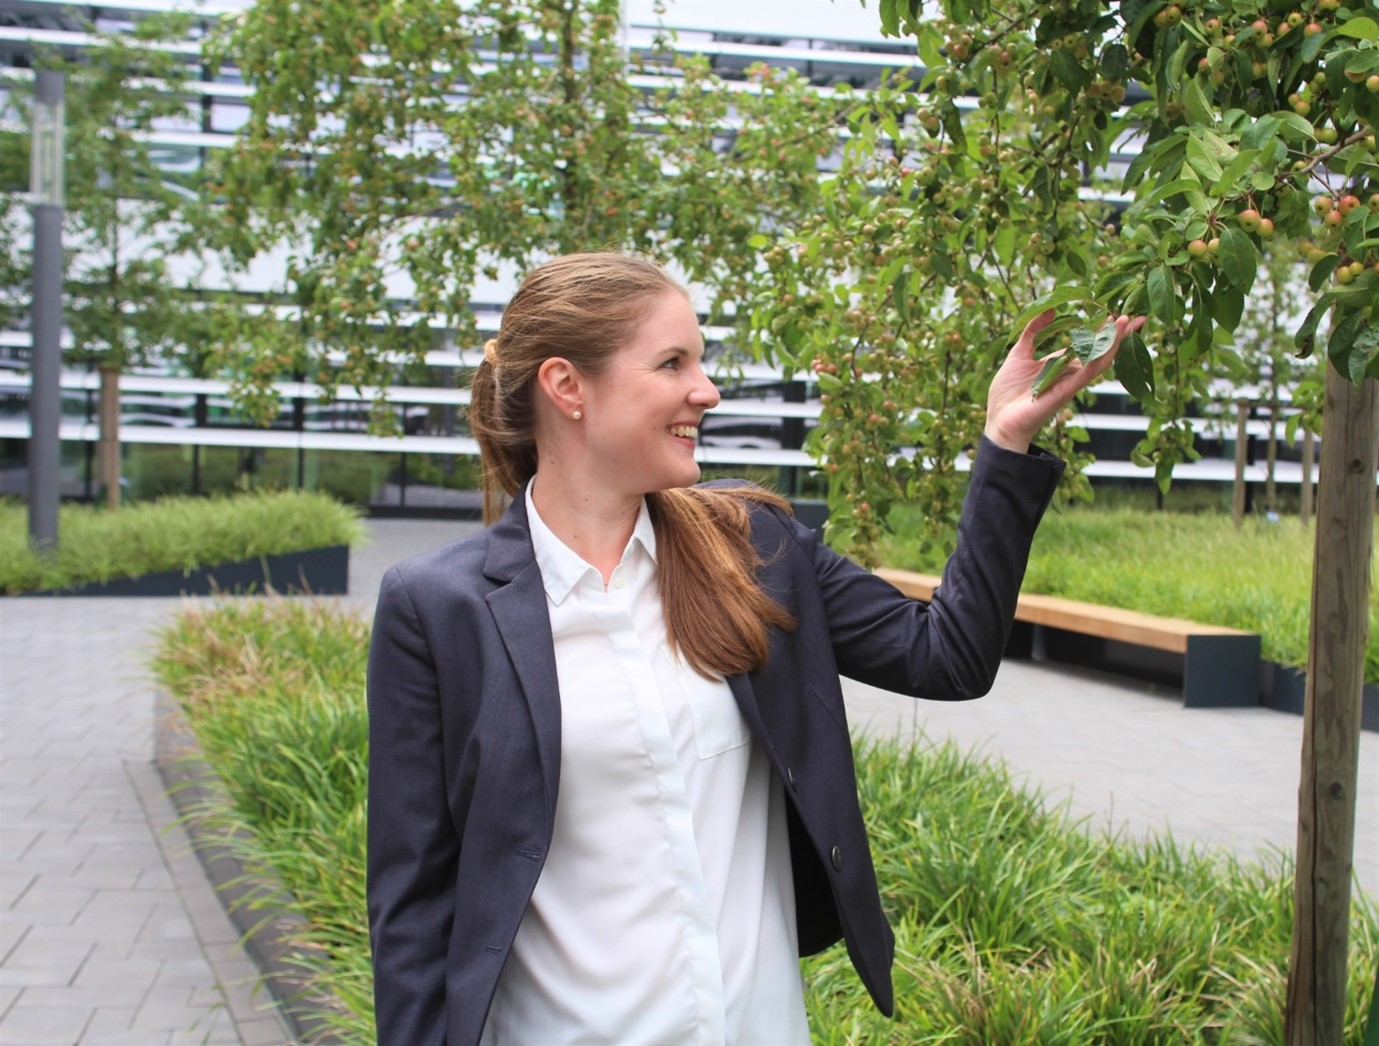 Focus on sustainability projects in The Rhenus Group